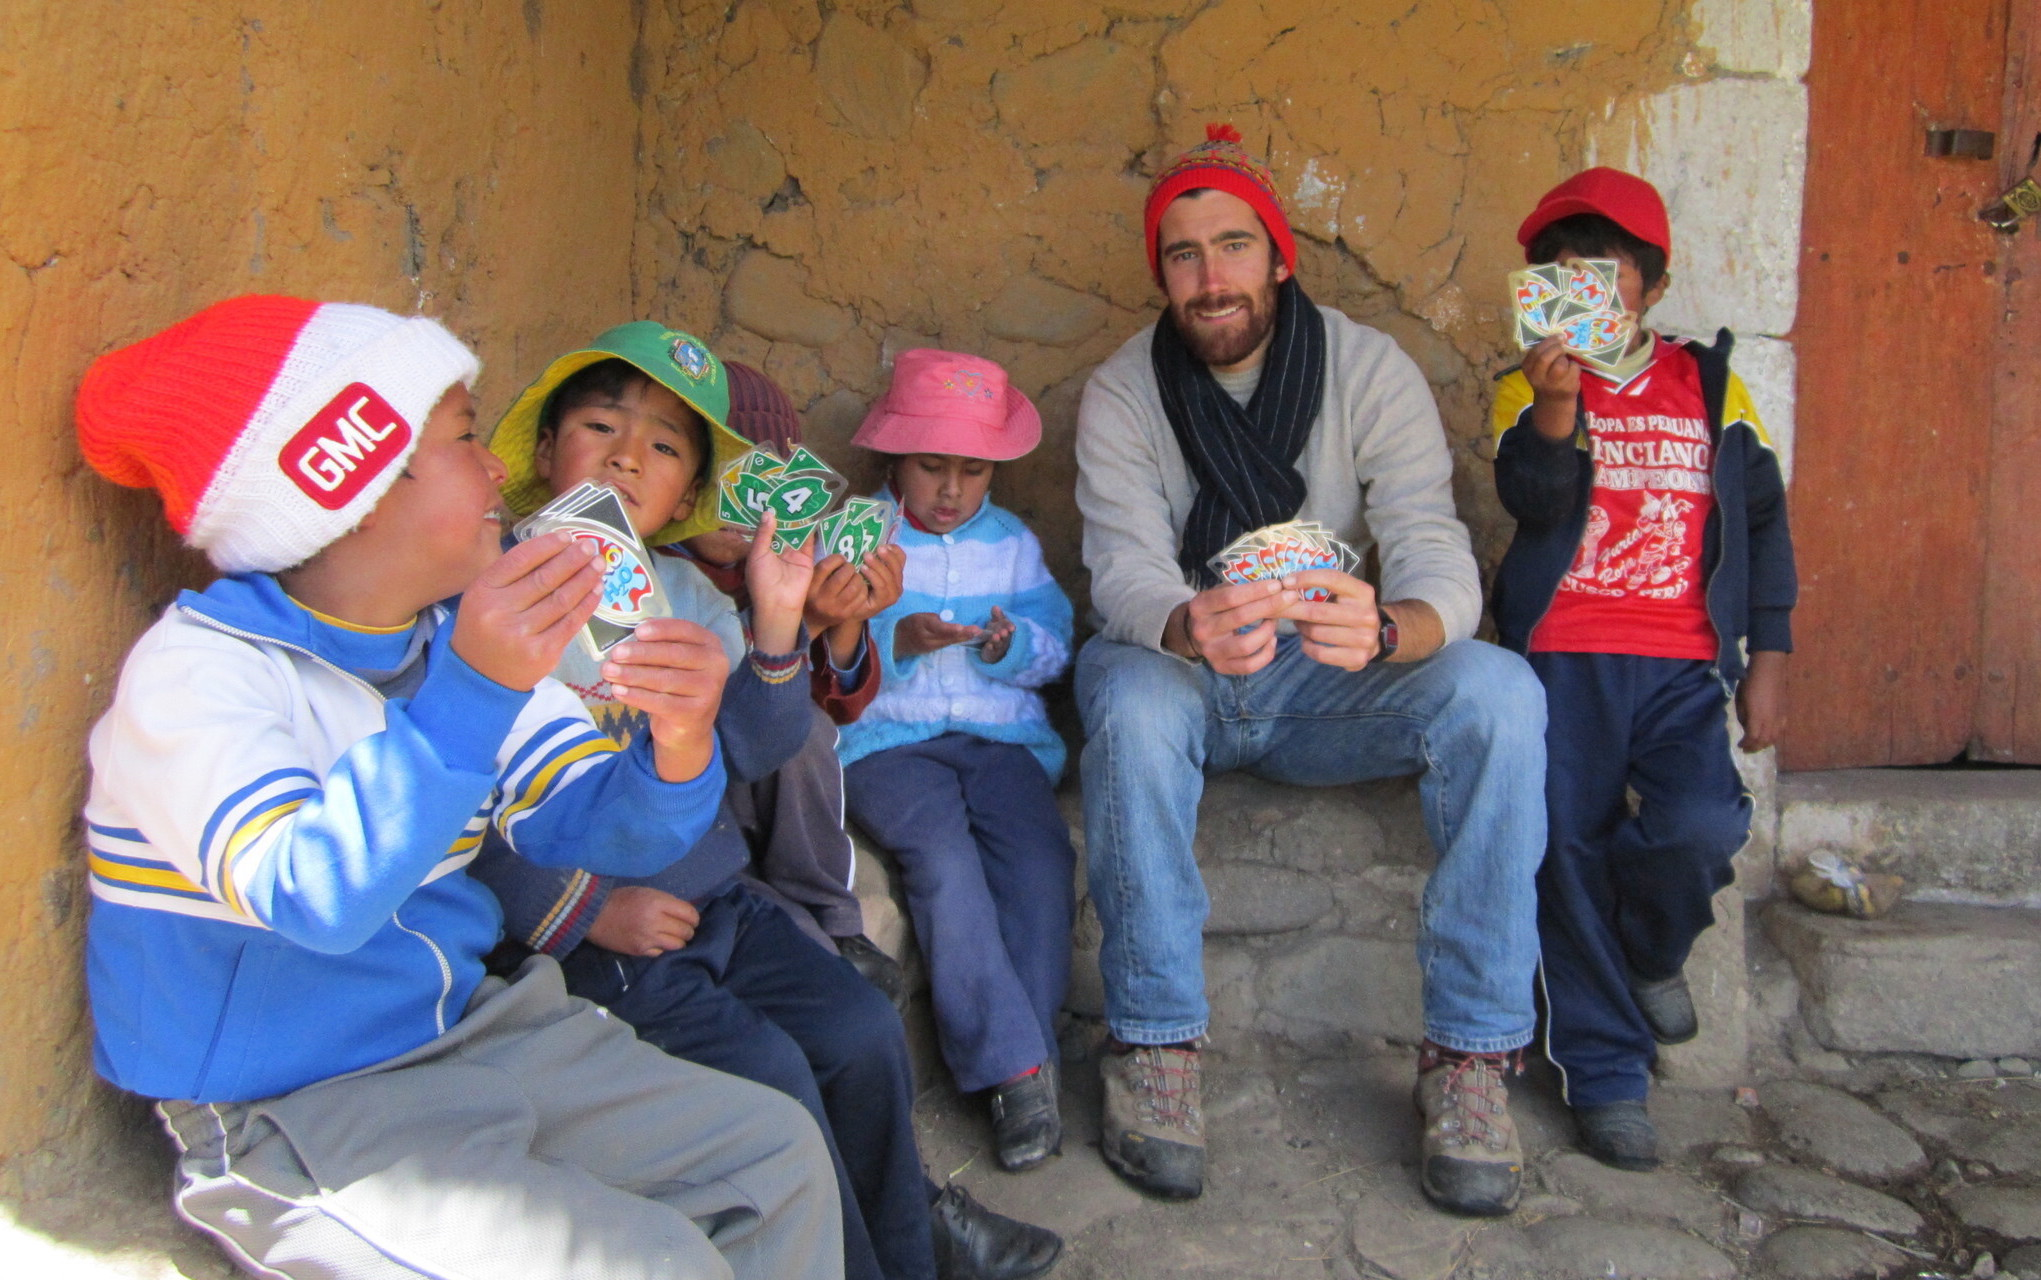 Mario playing cards with kids, Mario Nuño-Whelan, Peace Corps Peru